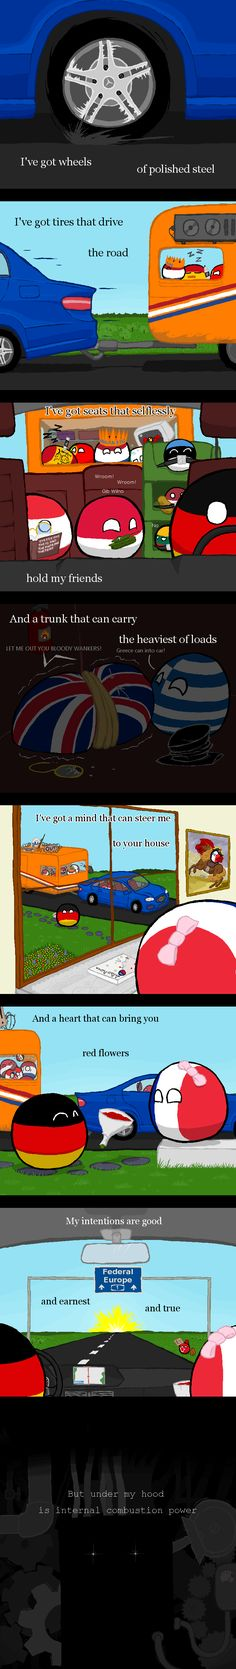 Satan Is My Motor (Germany, France, Reichtangle) by selenocystein  #polandball #countryball